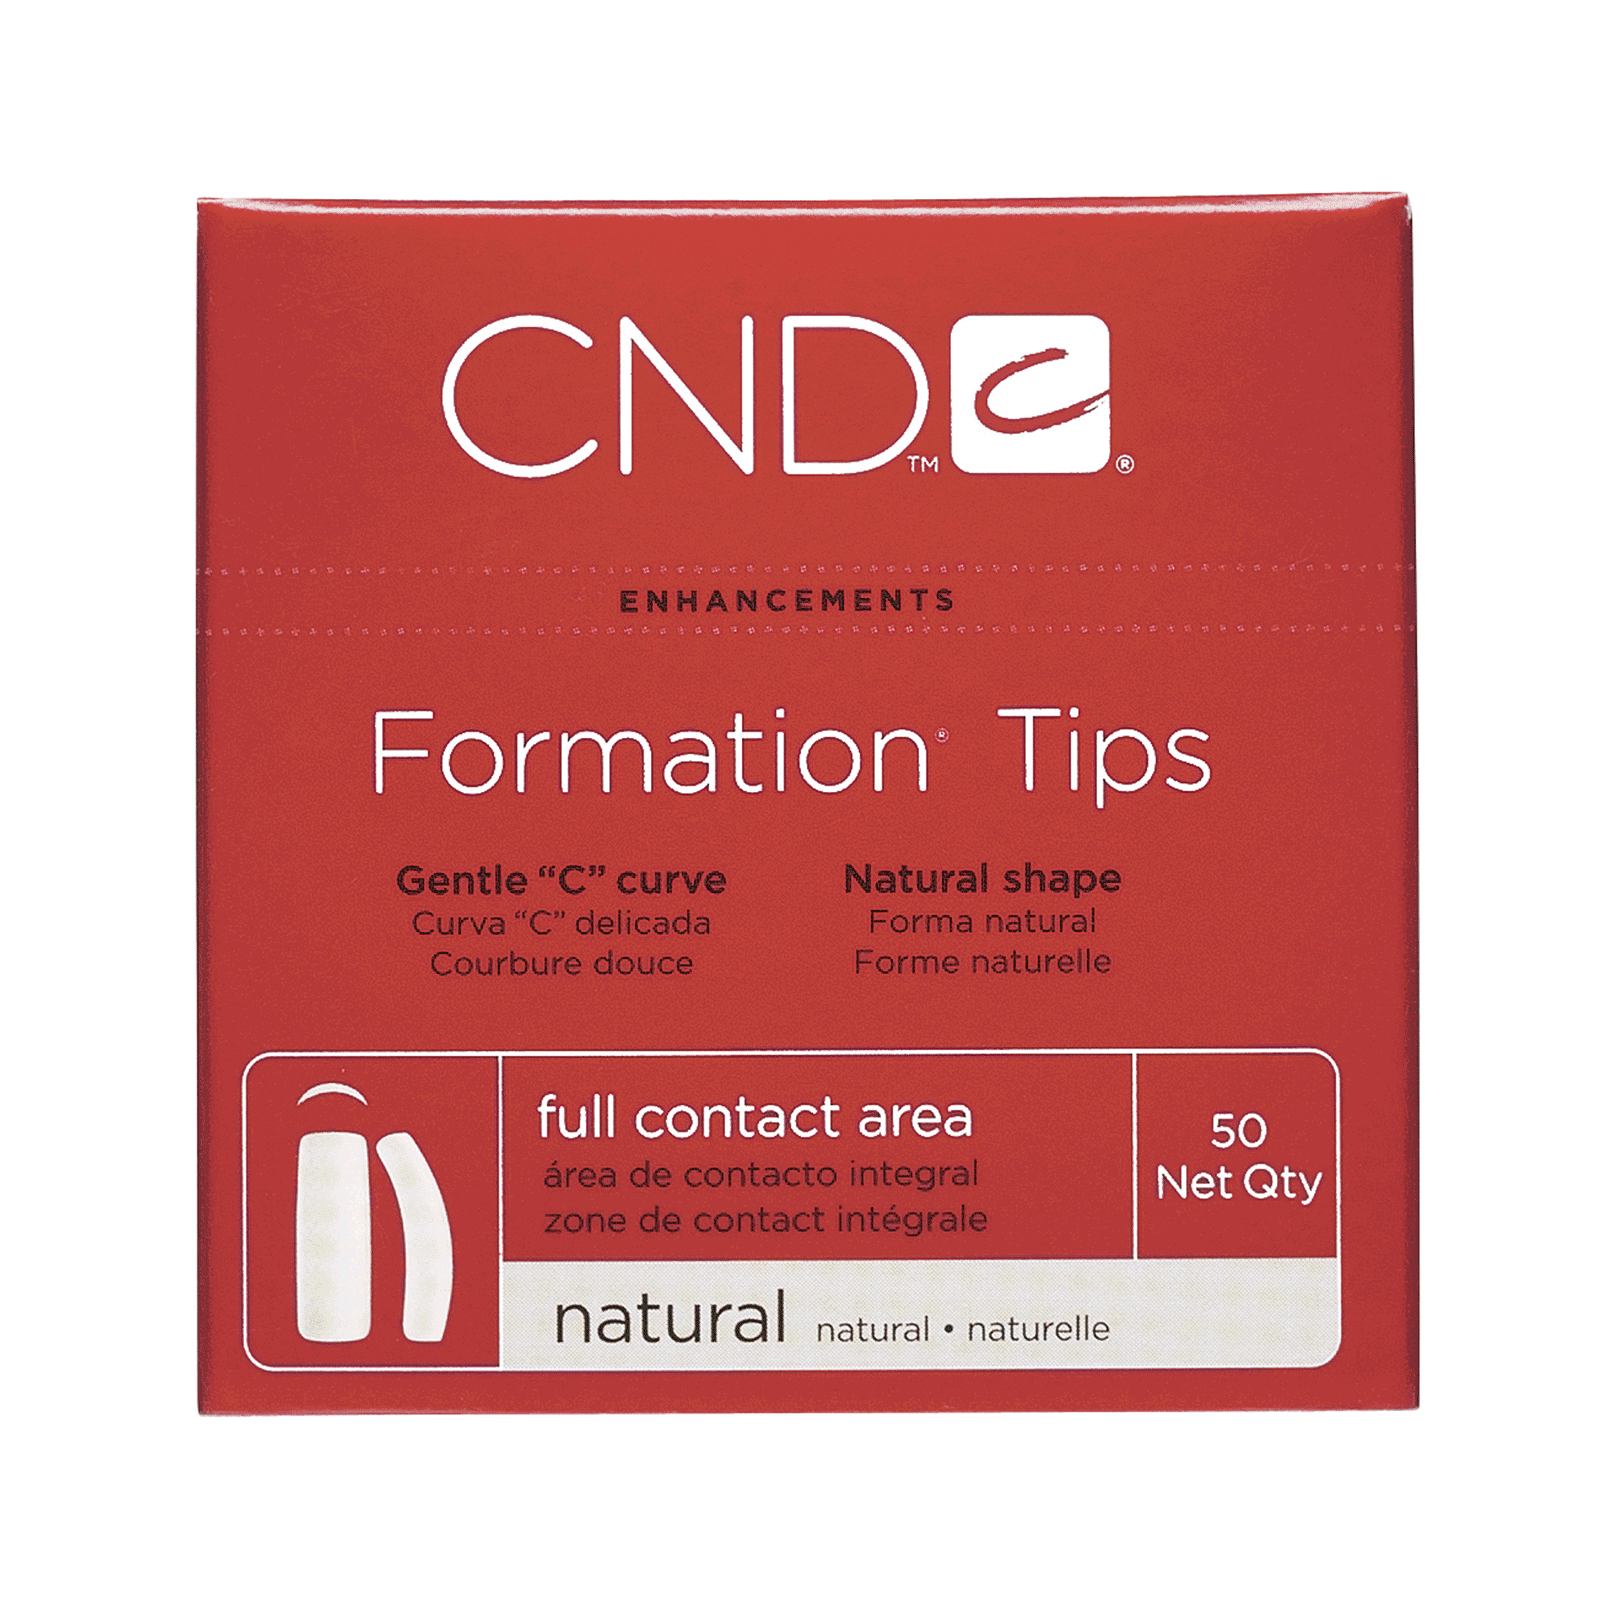 Formation Tips #5